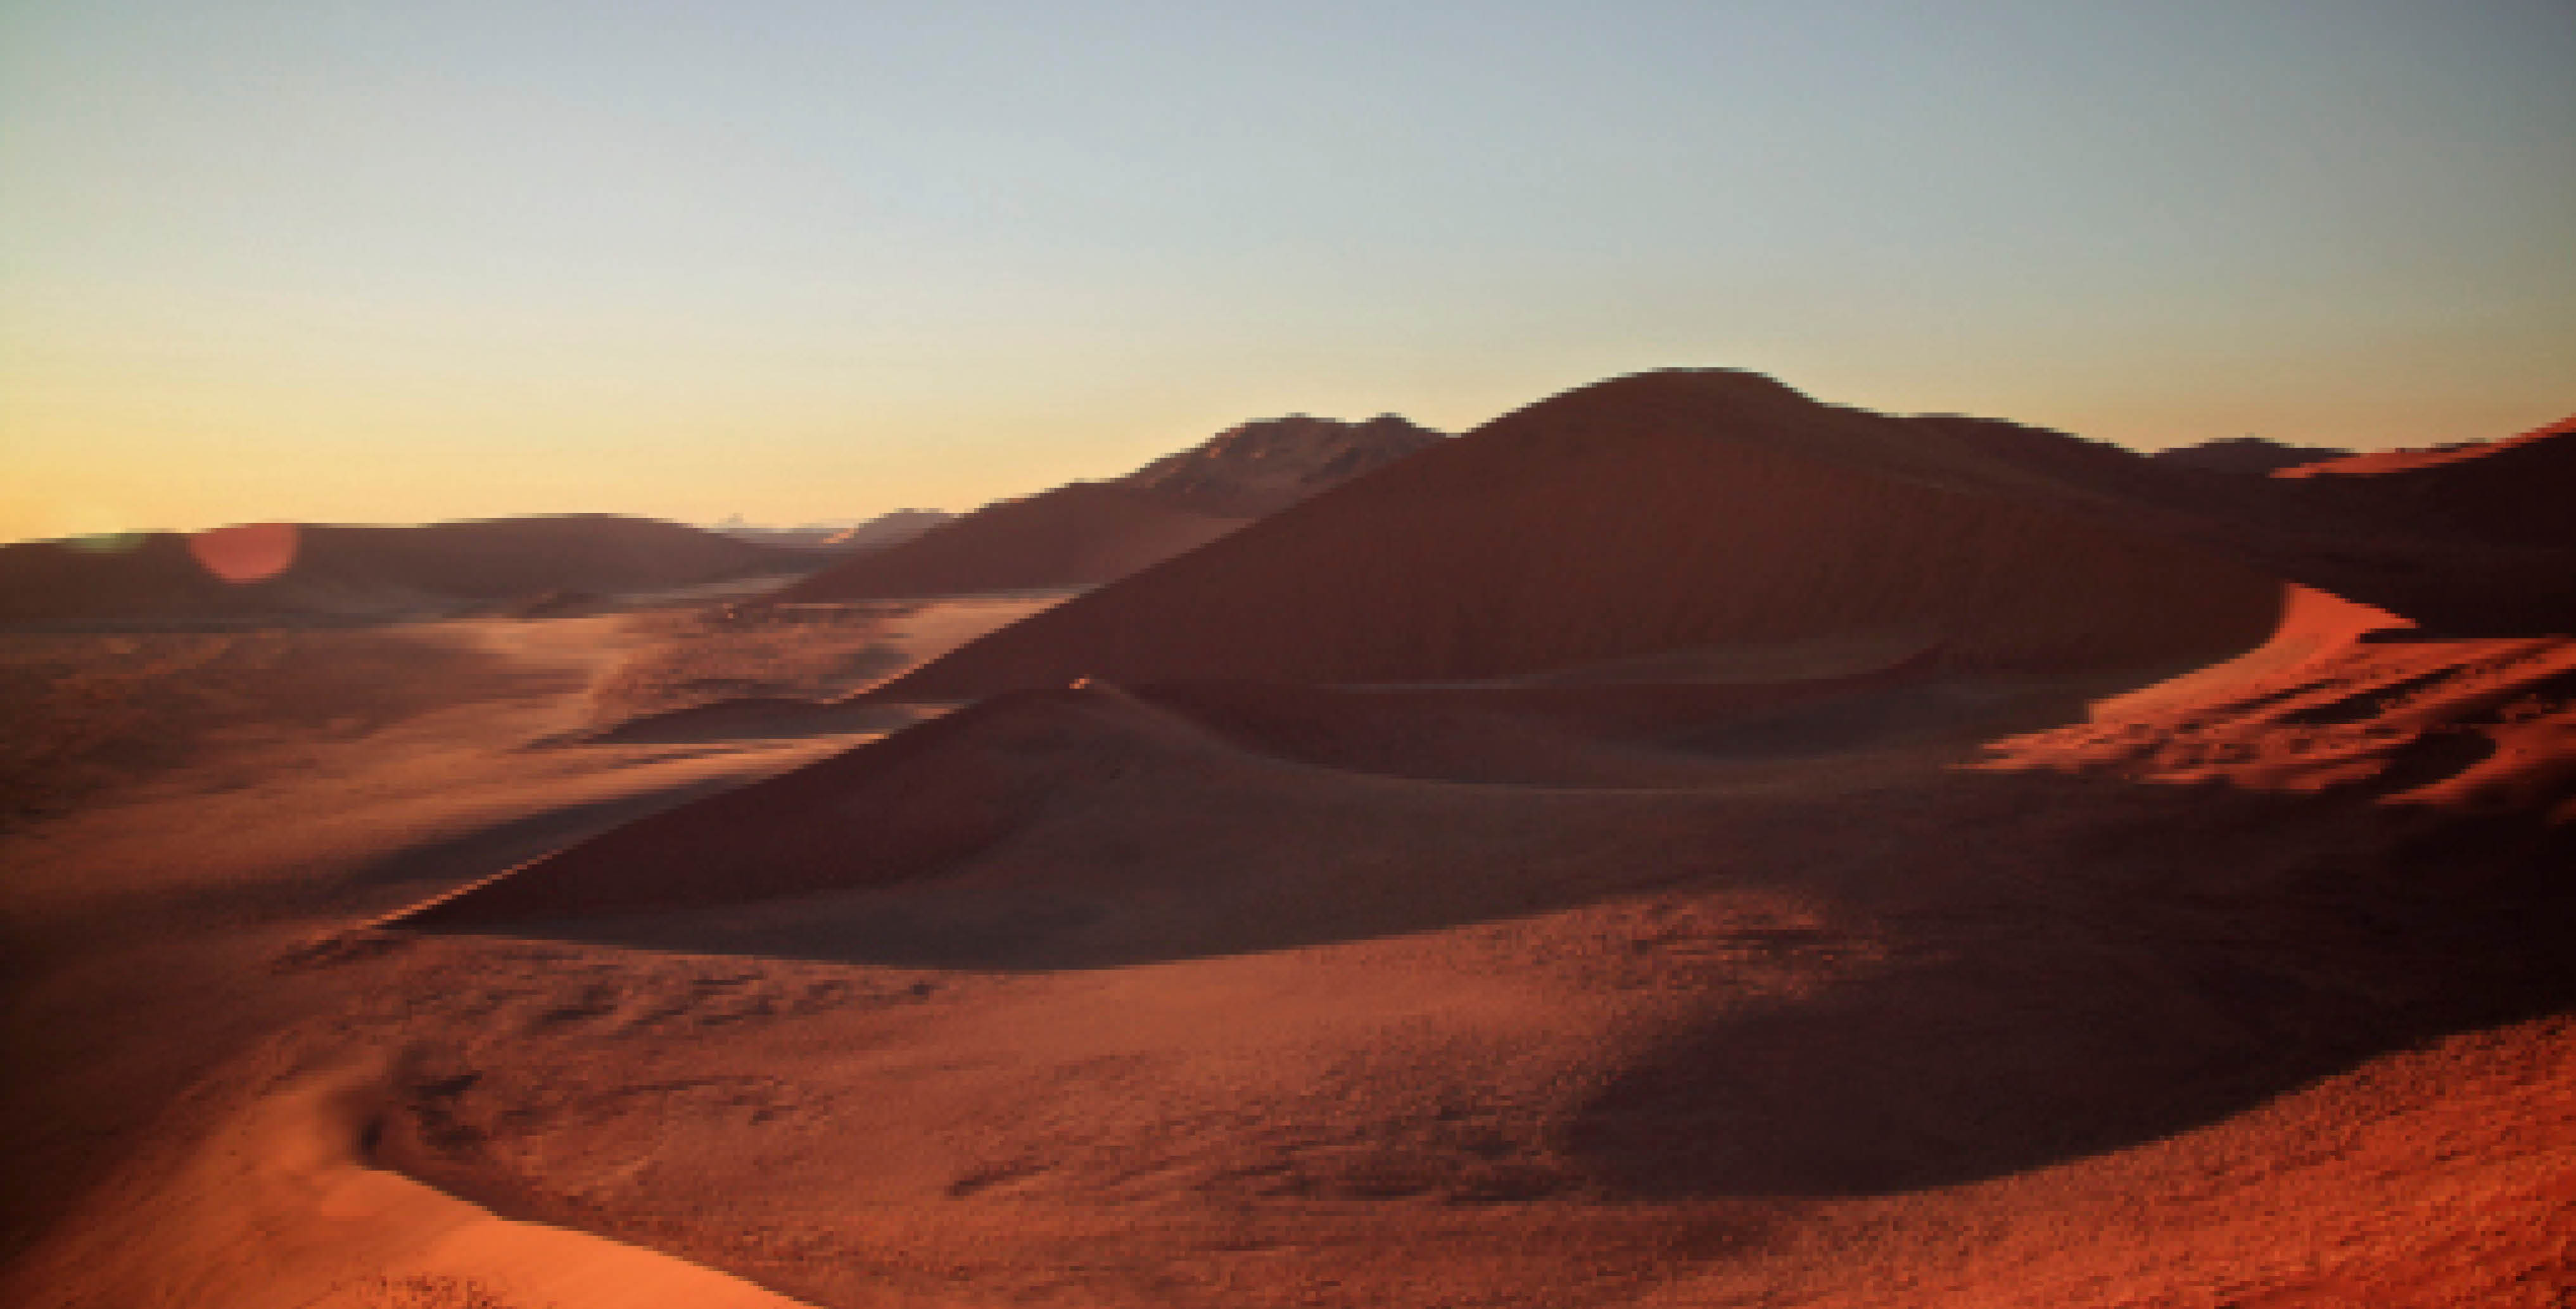 Namibia's famous dunes